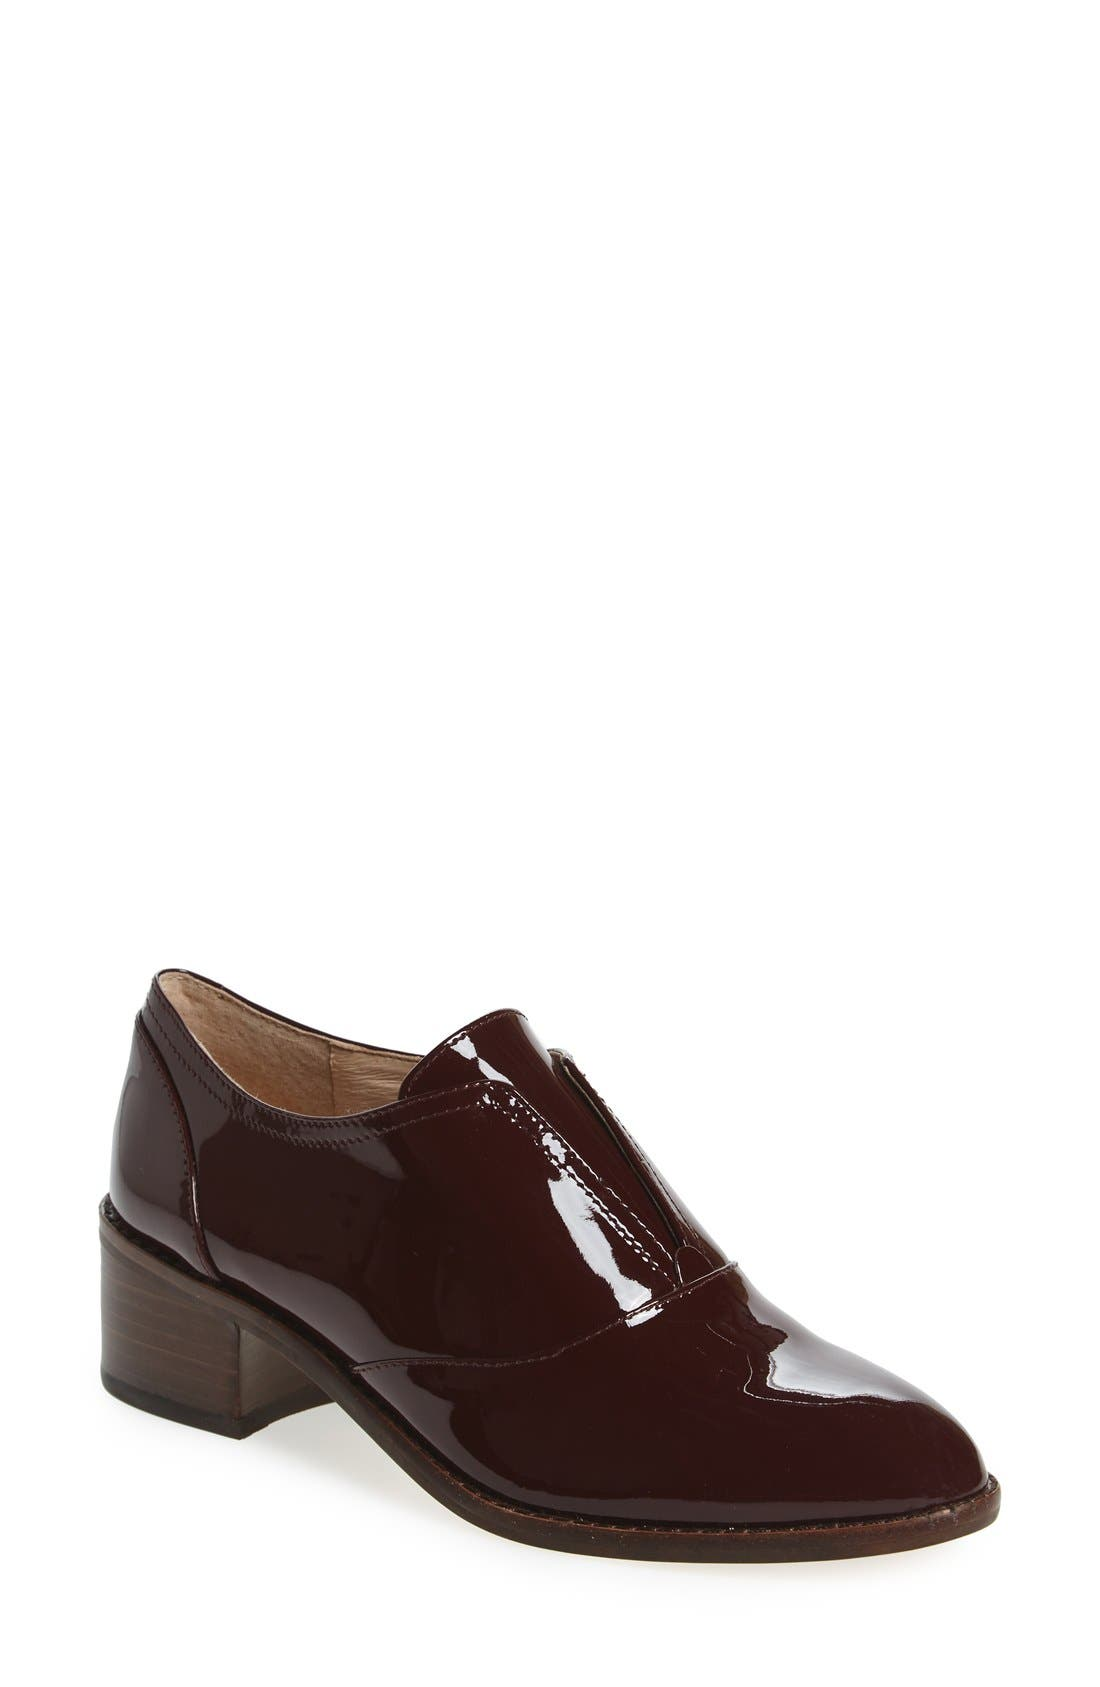 Alternate Image 1 Selected - Louise et Cie 'Freyer' Laceless Oxford (Women)